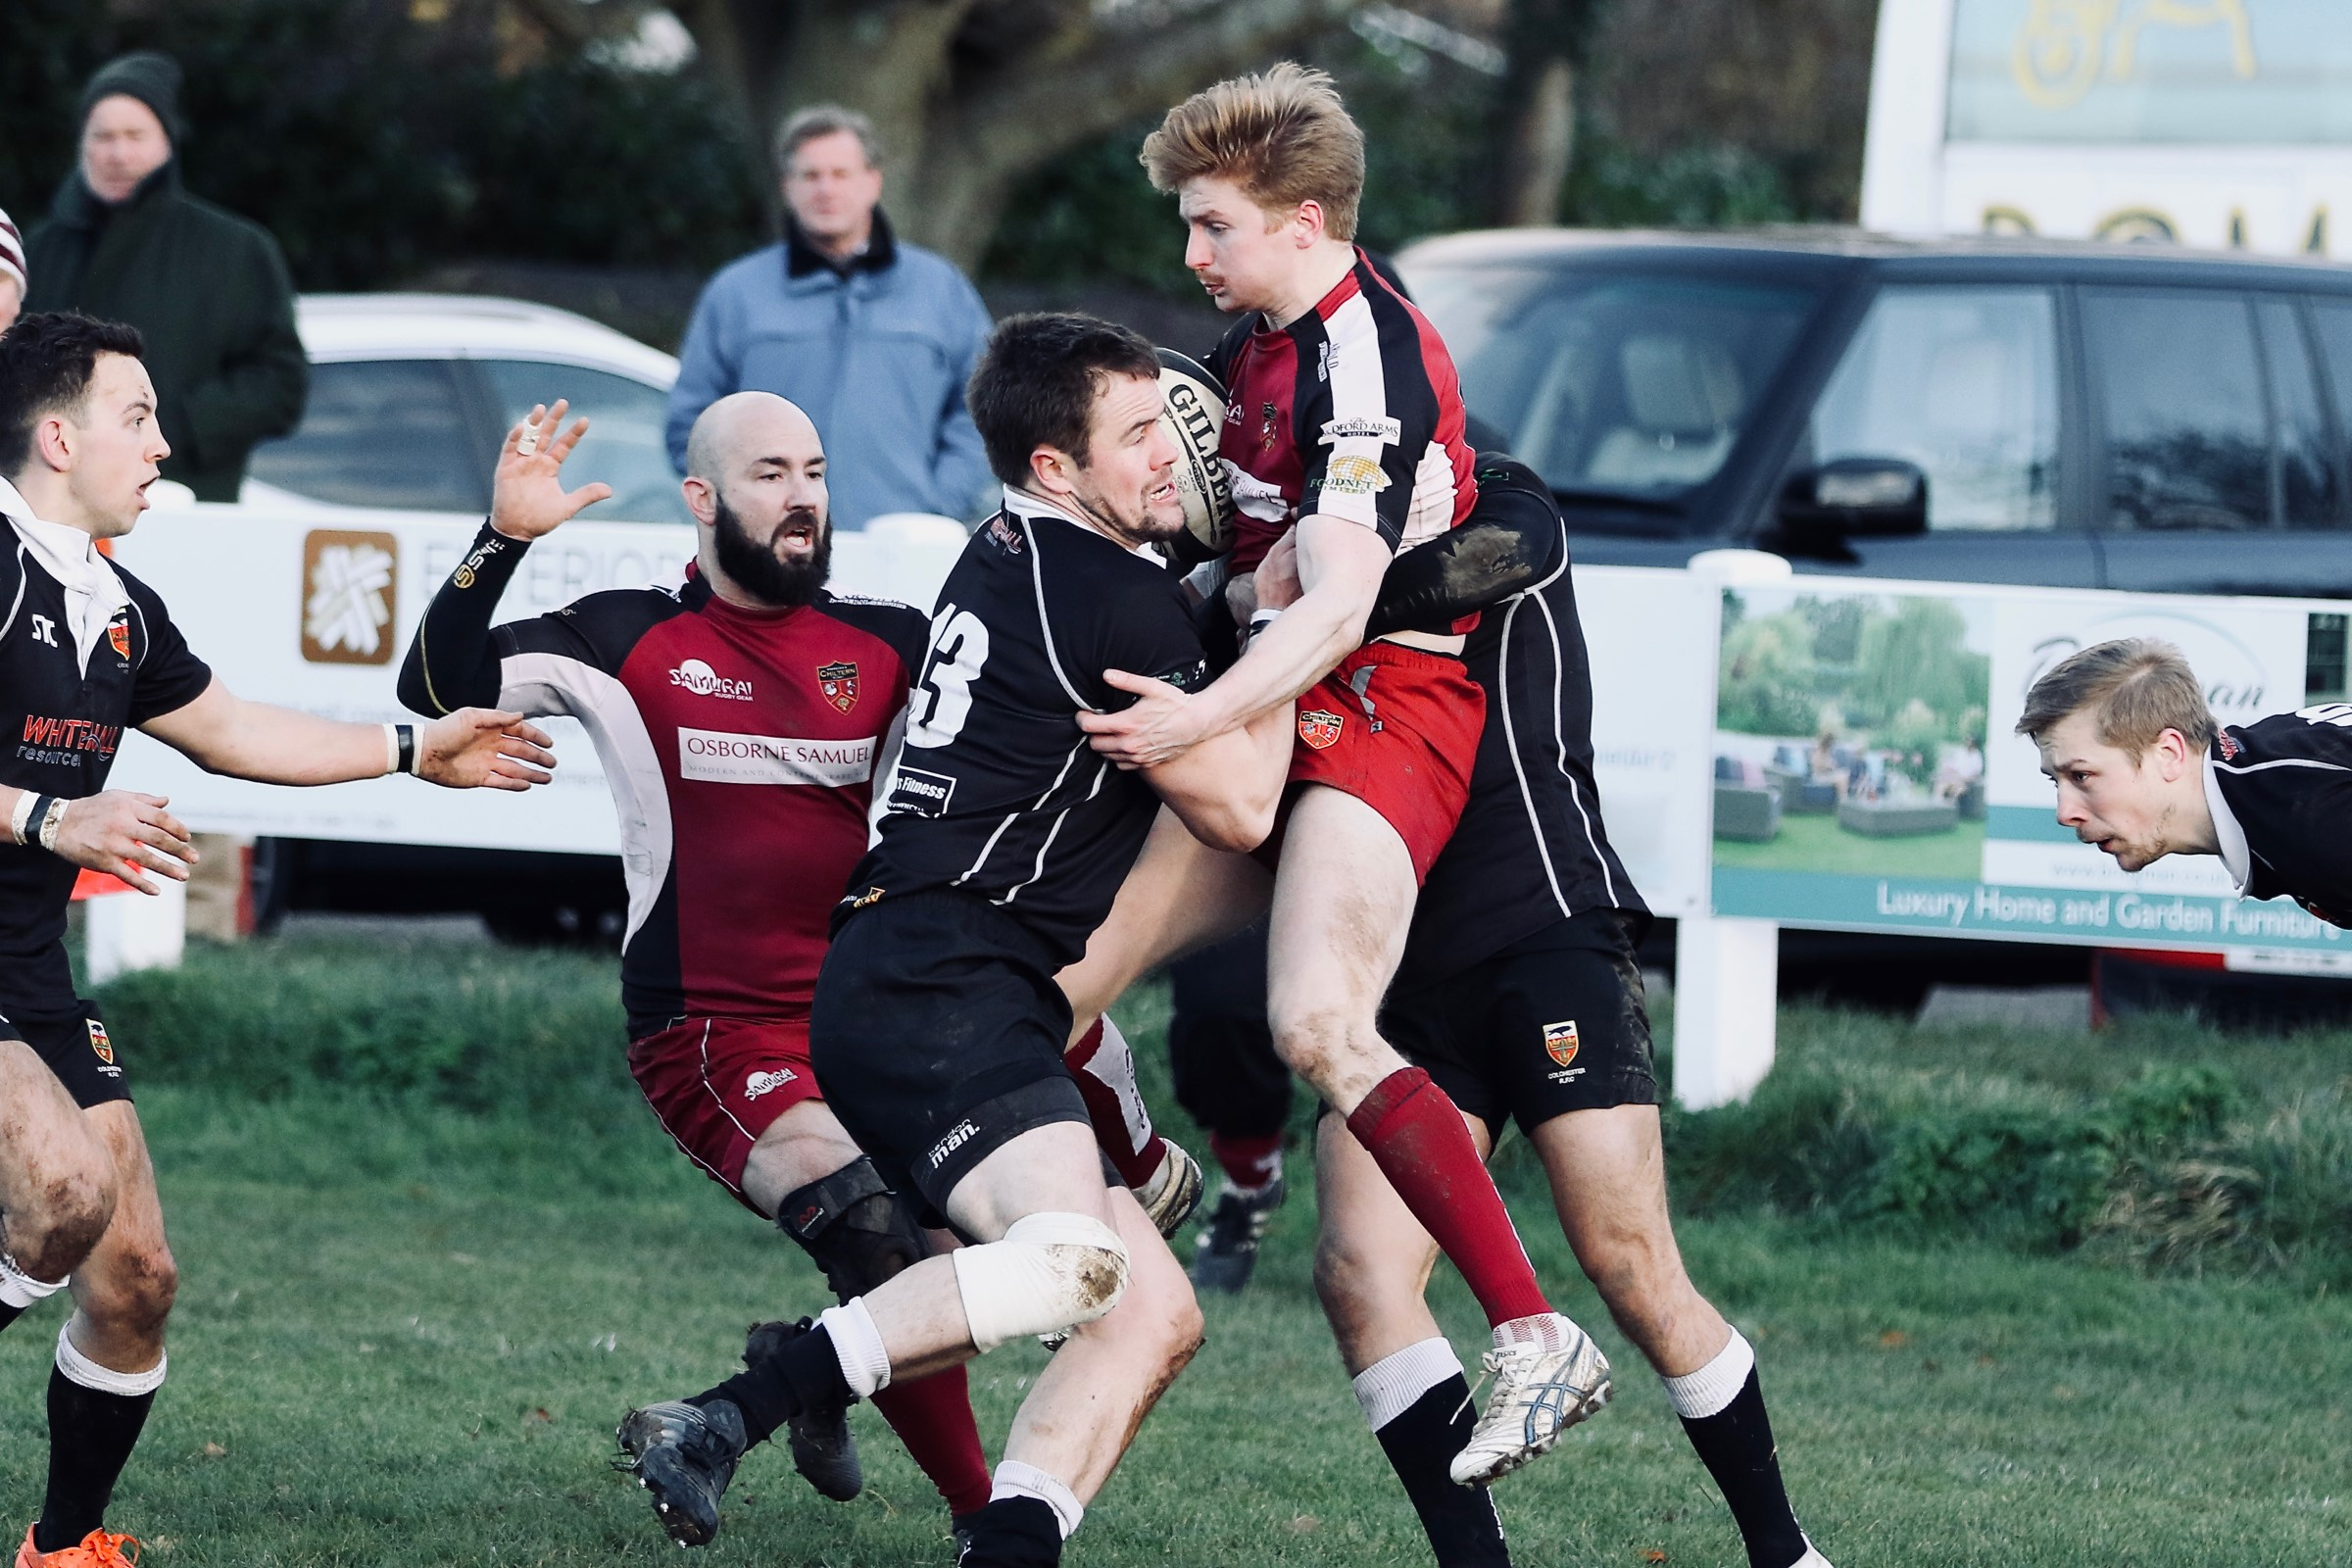 Amersham drew a hard-fought game with Diss